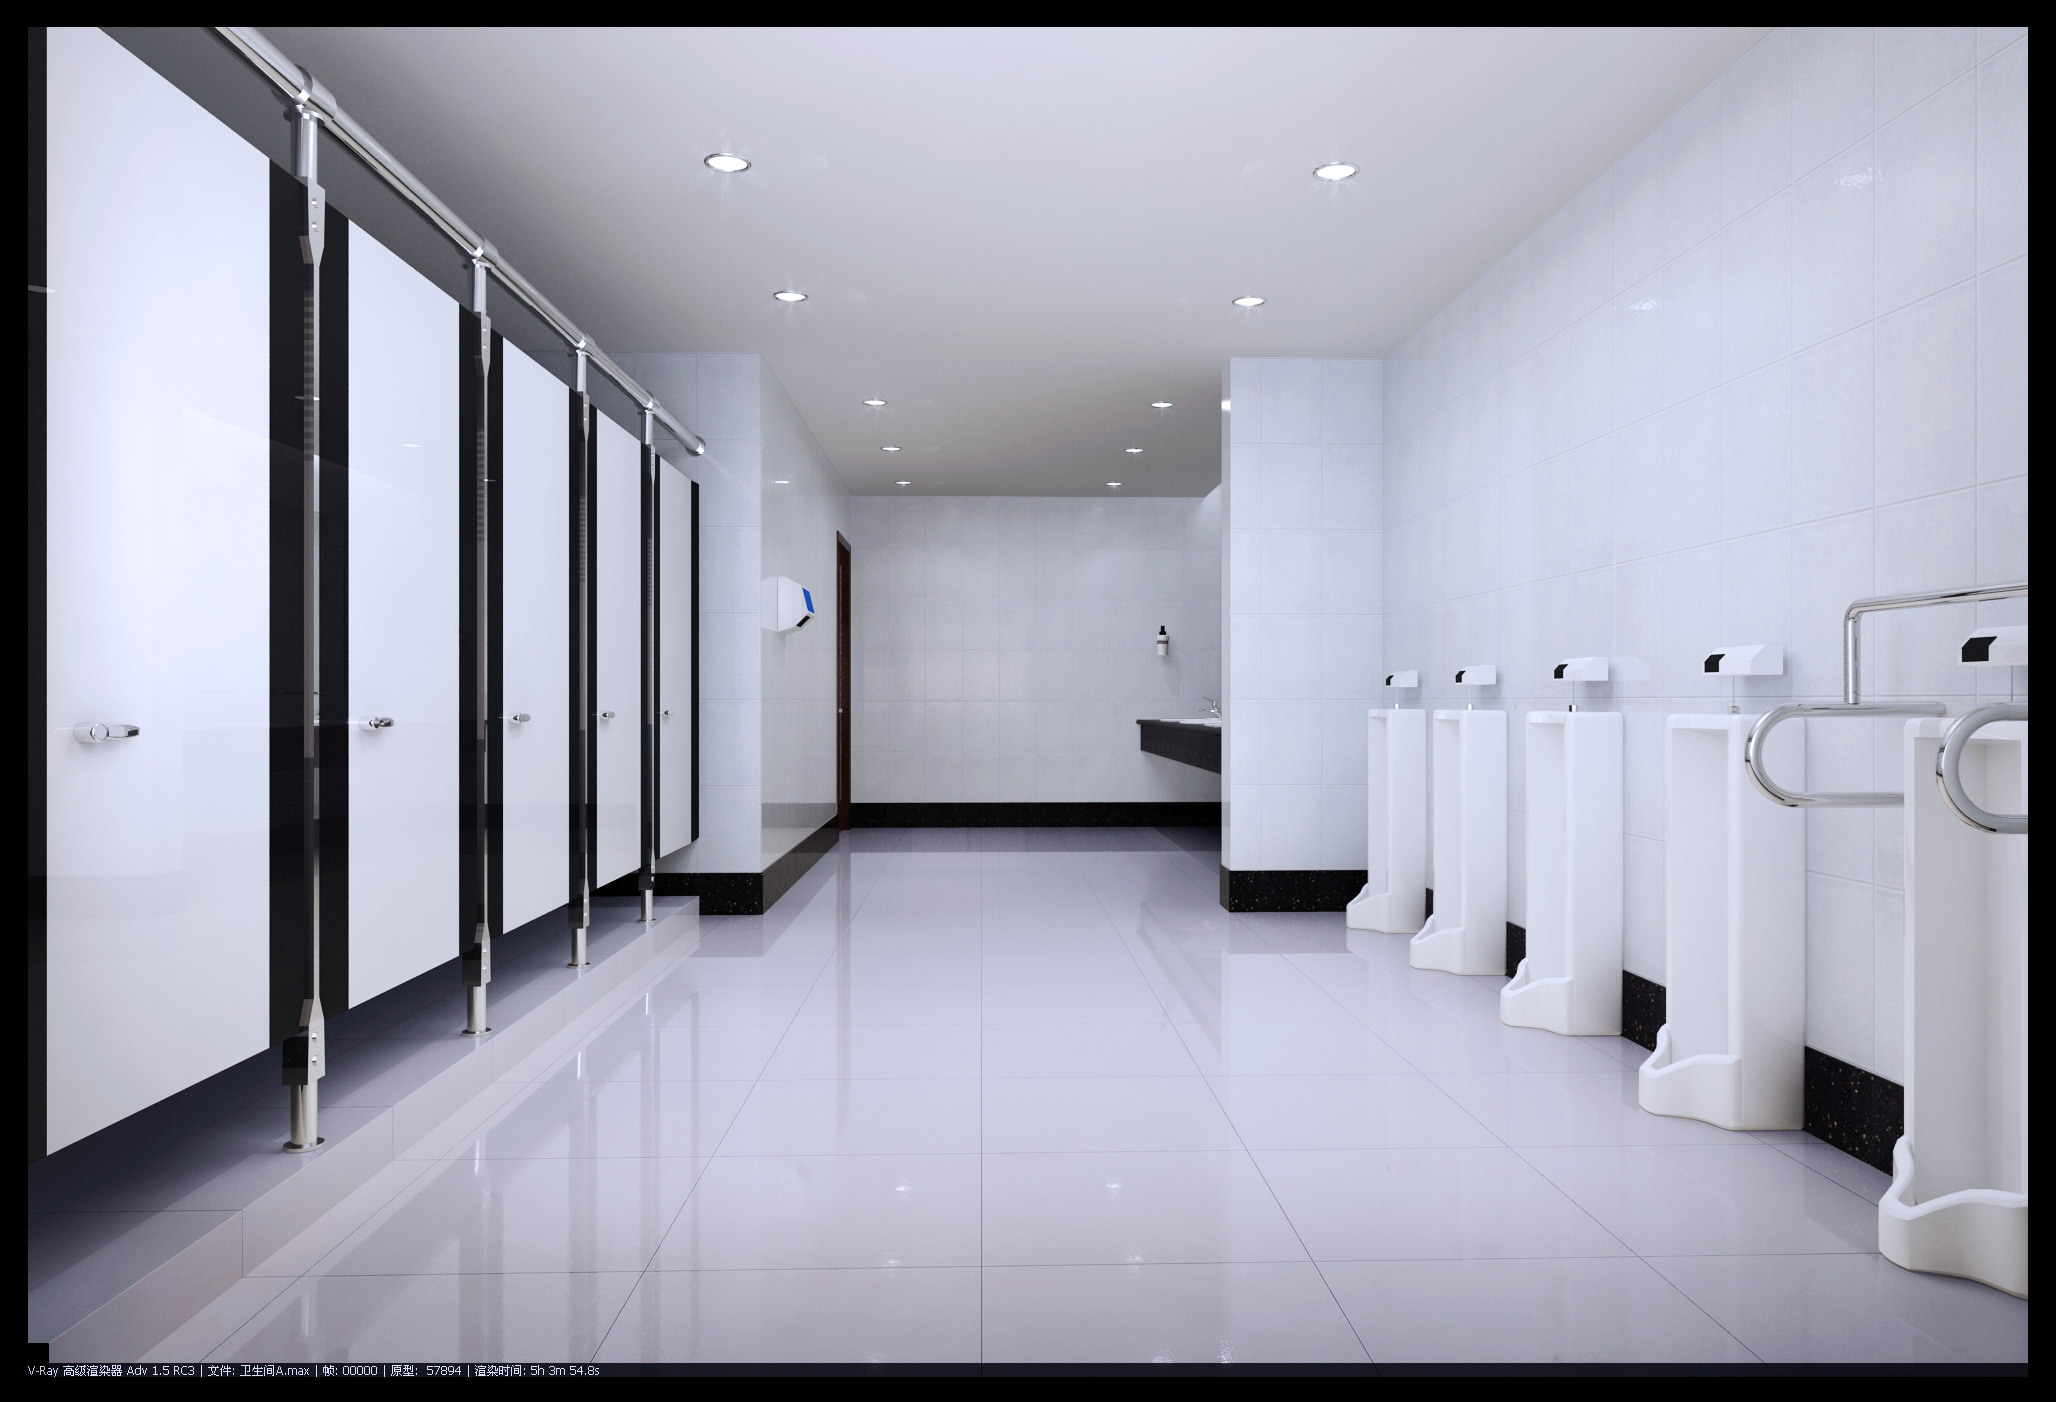 Spacious polished public toilet 3d model max for Bathroom design 3d model